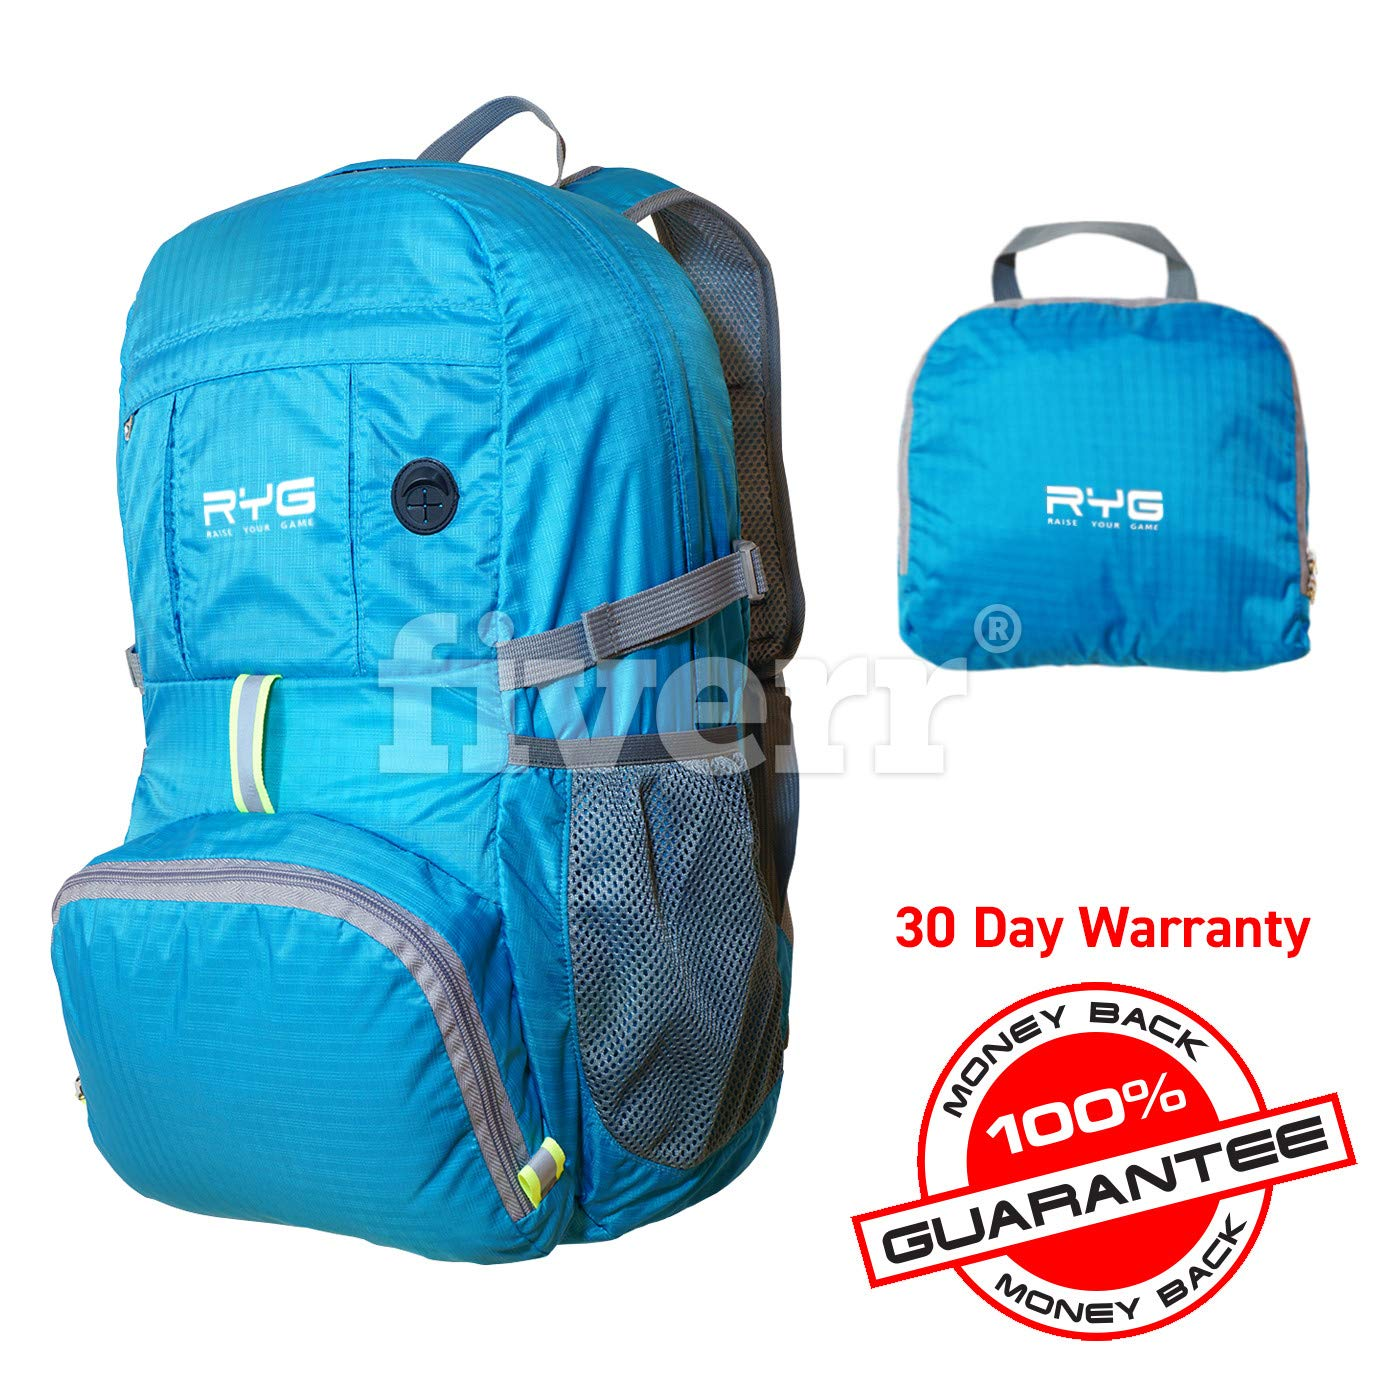 NA Lightweight Packable Travel Hiking Water-Resistant Stowaway Foldable Storage Camping Hydration Ready for Women and Men Ultralight Backpack Beach